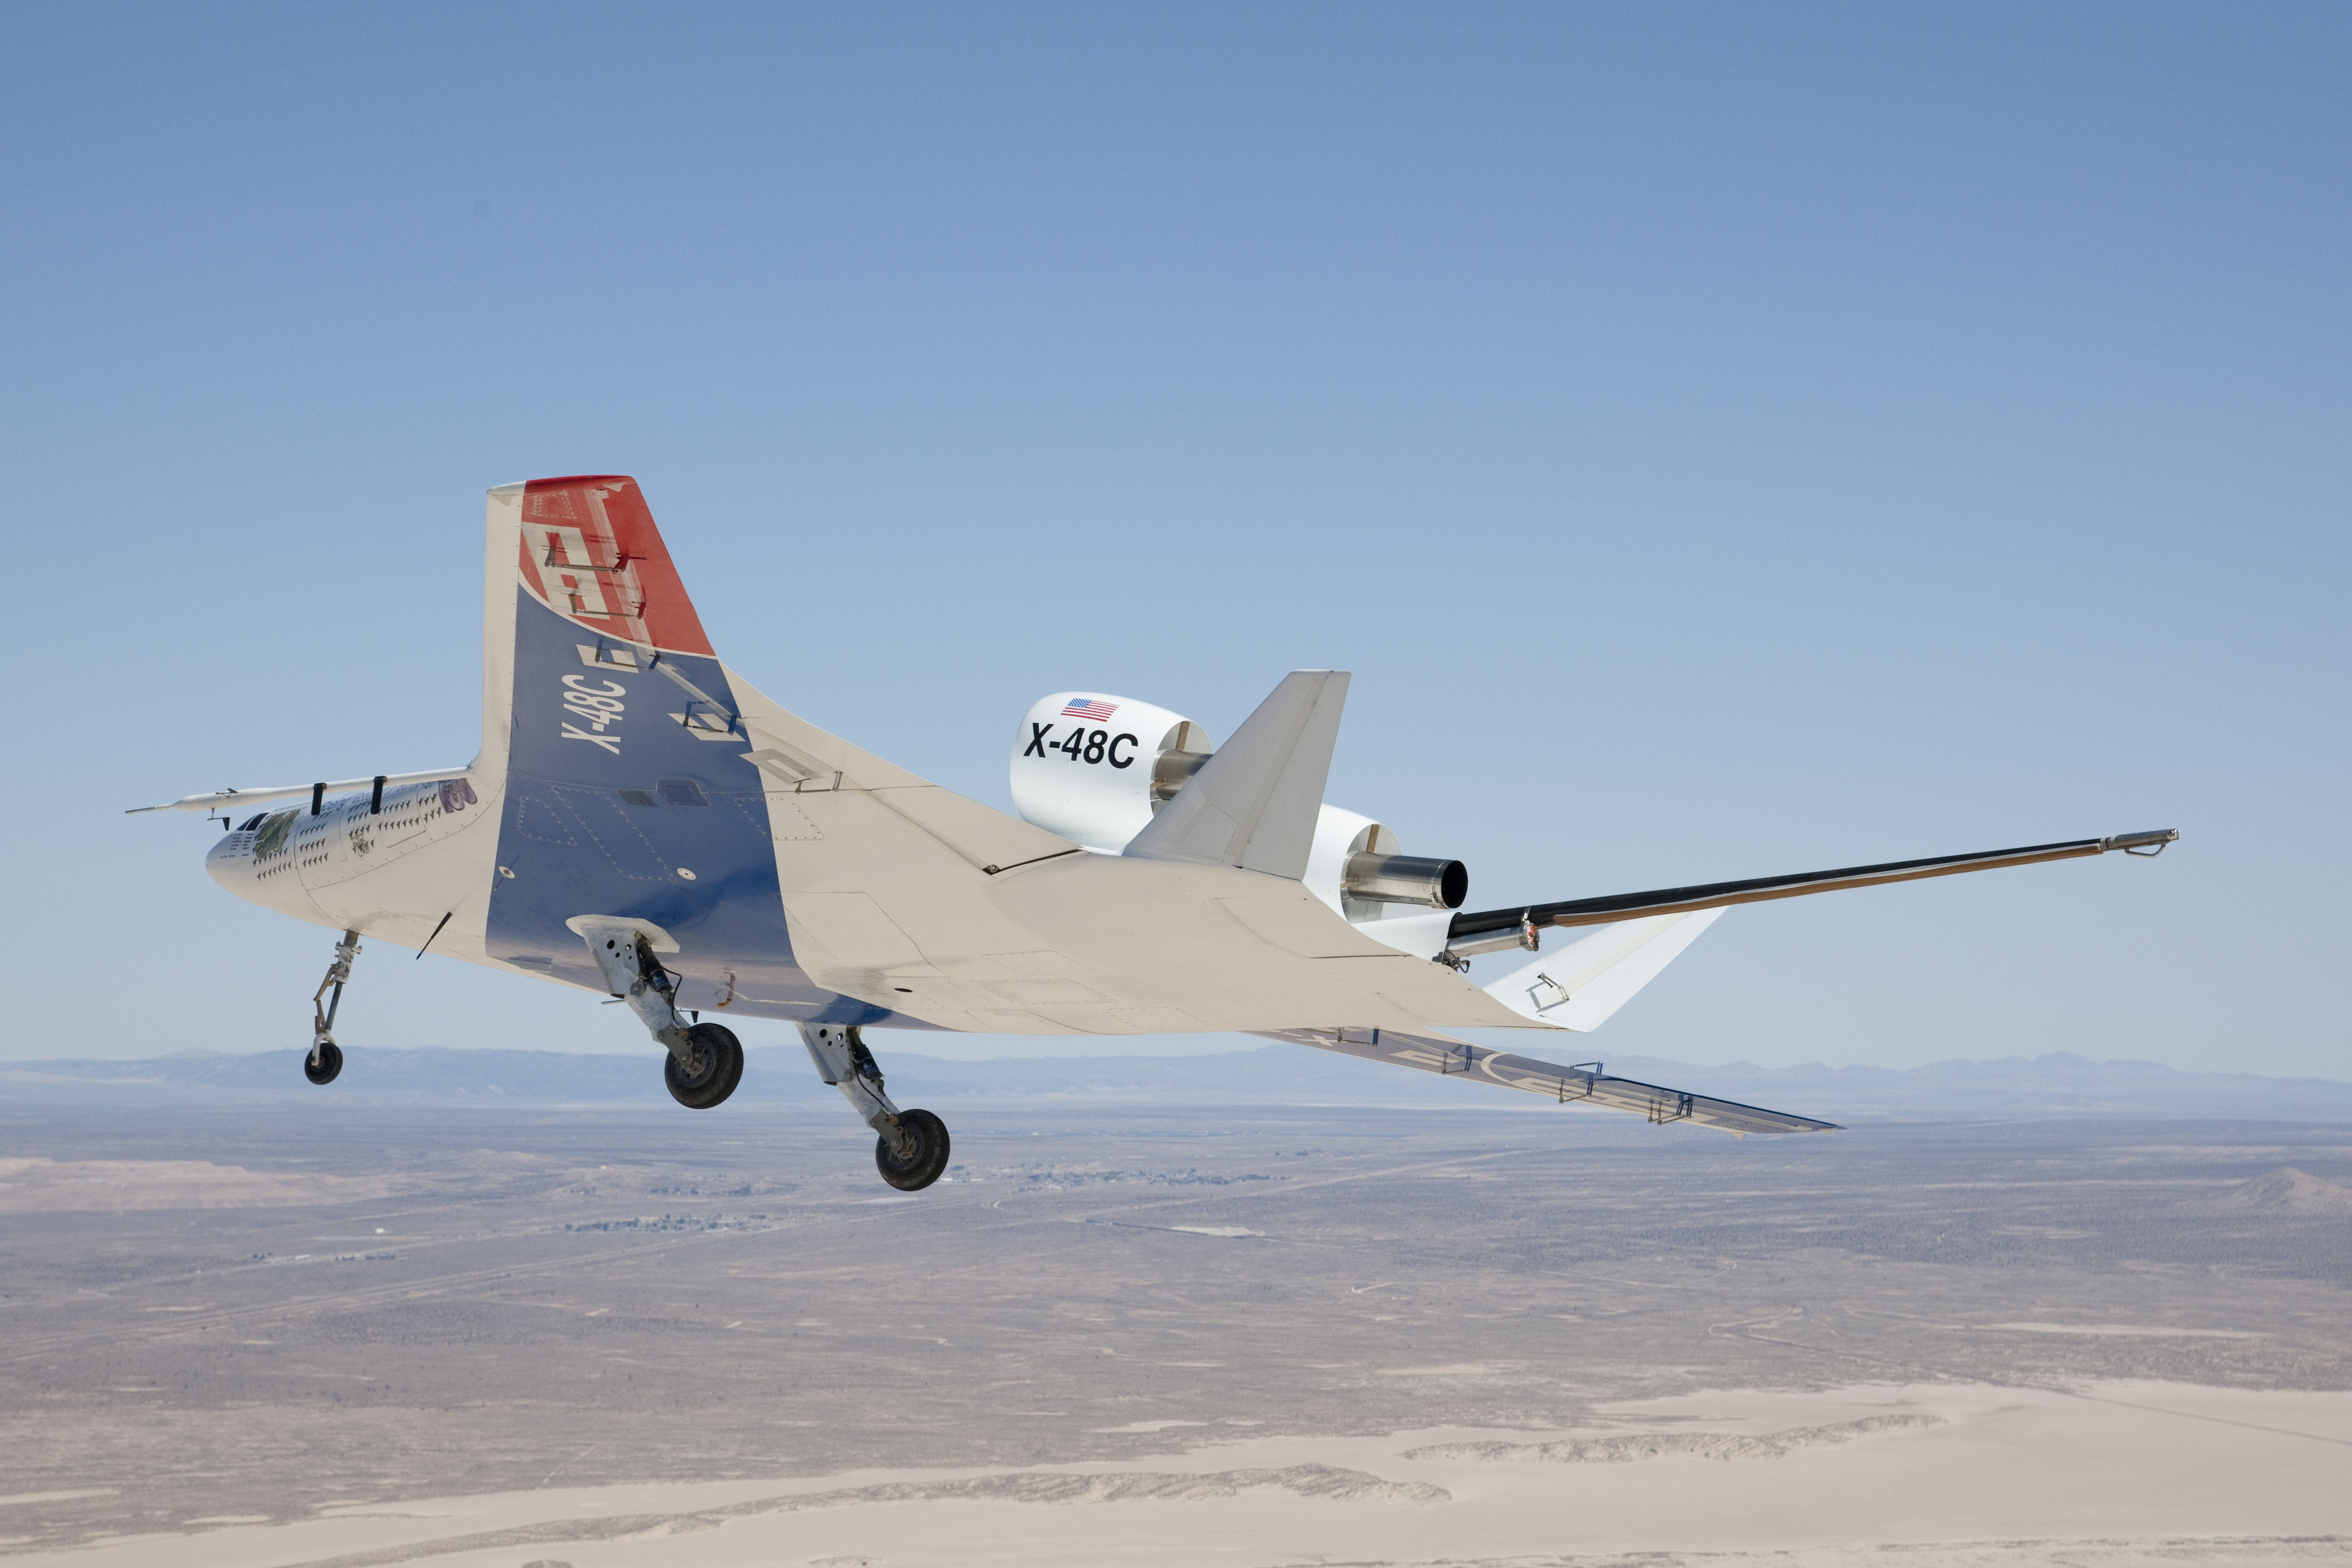 nasa x 48 drone aircraft - photo #2